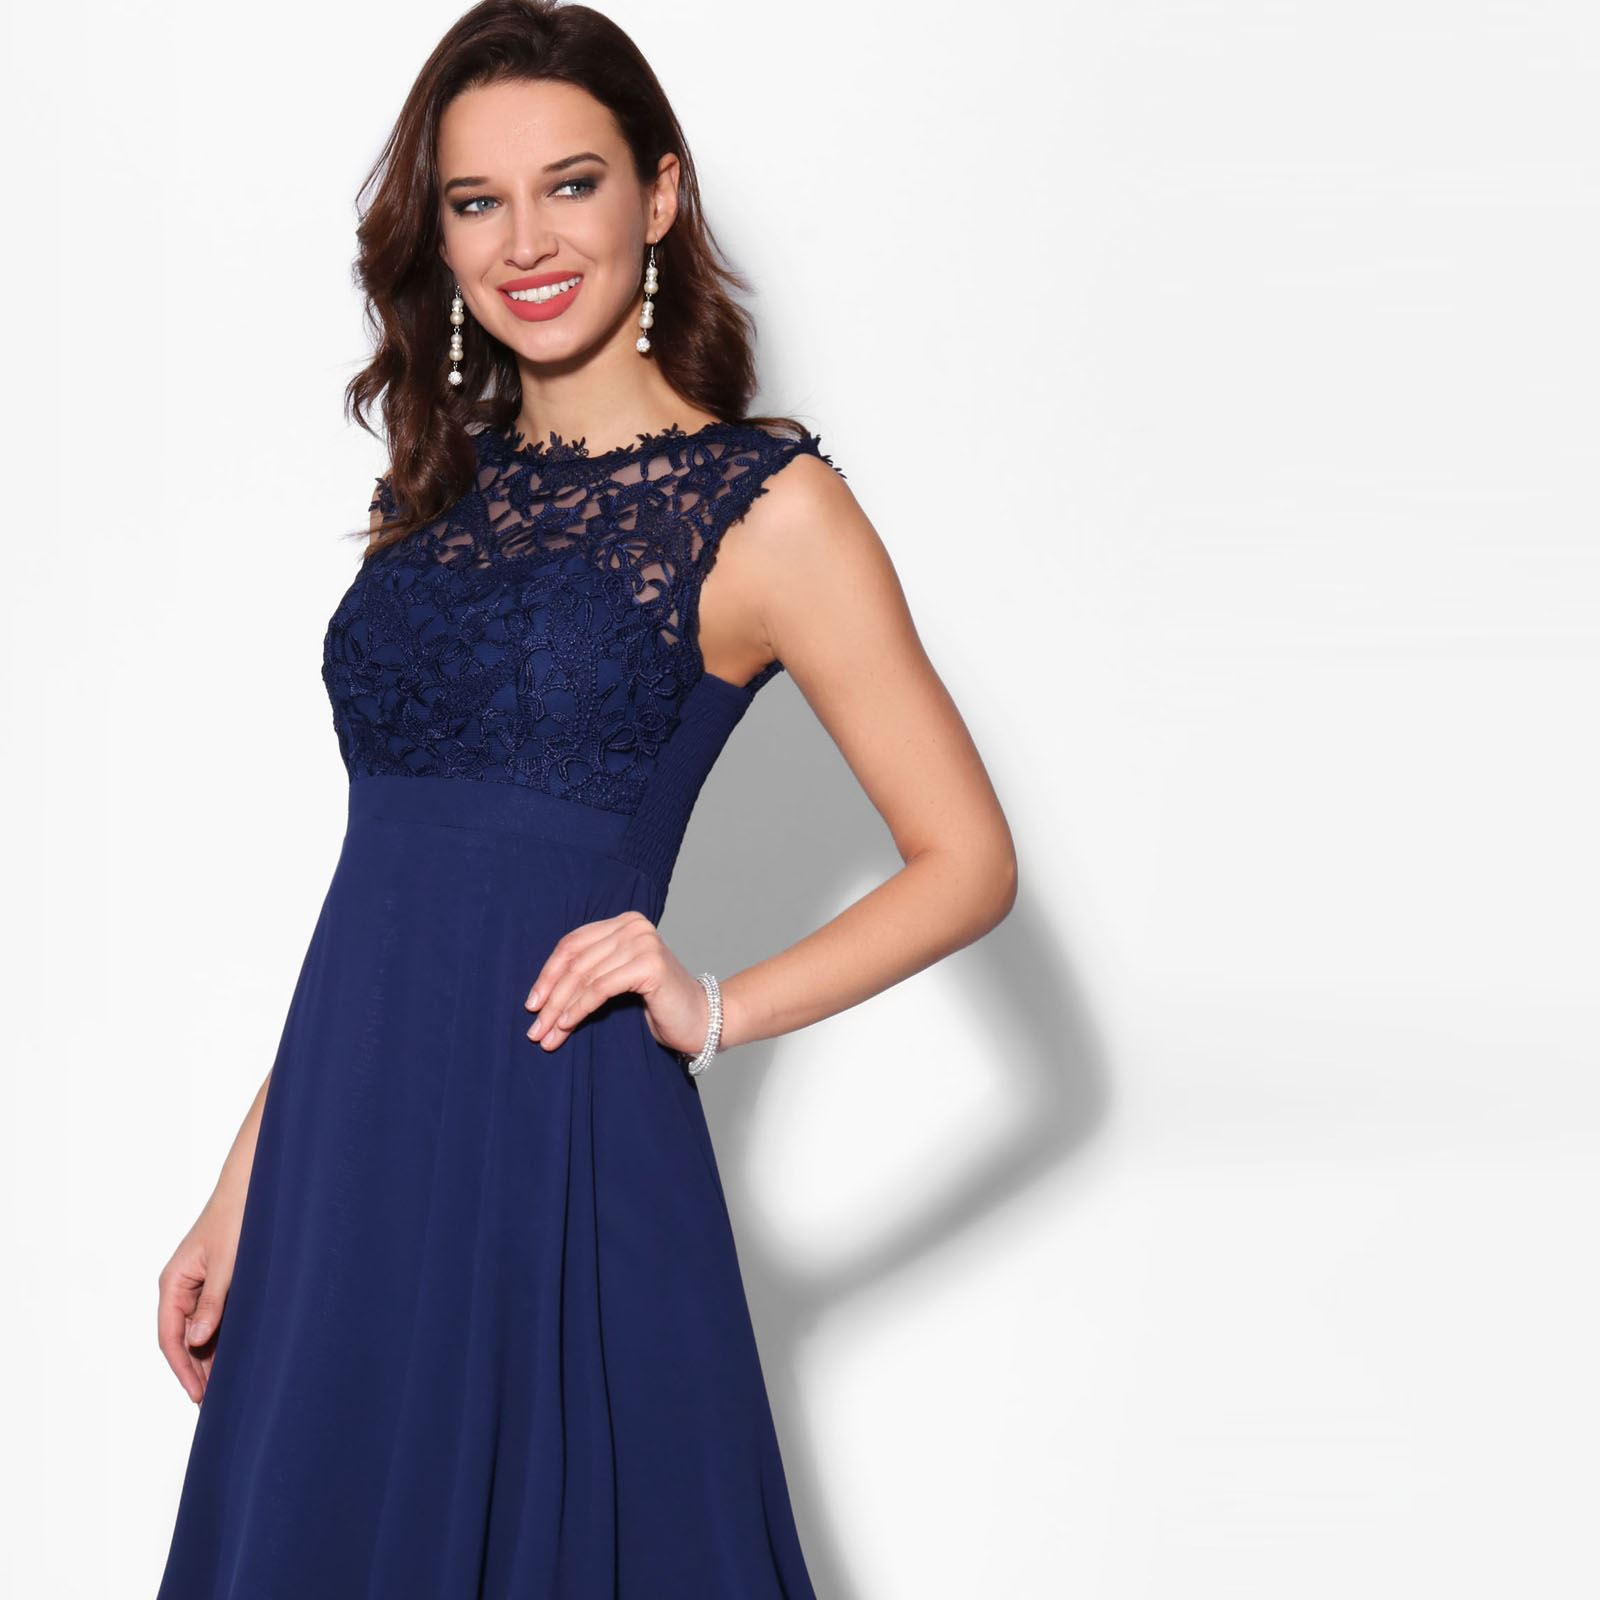 Women-Maxi-Dress-Ladies-Formal-Evening-Party-Cocktail-Lace-Chiffon-Gown-Party thumbnail 17